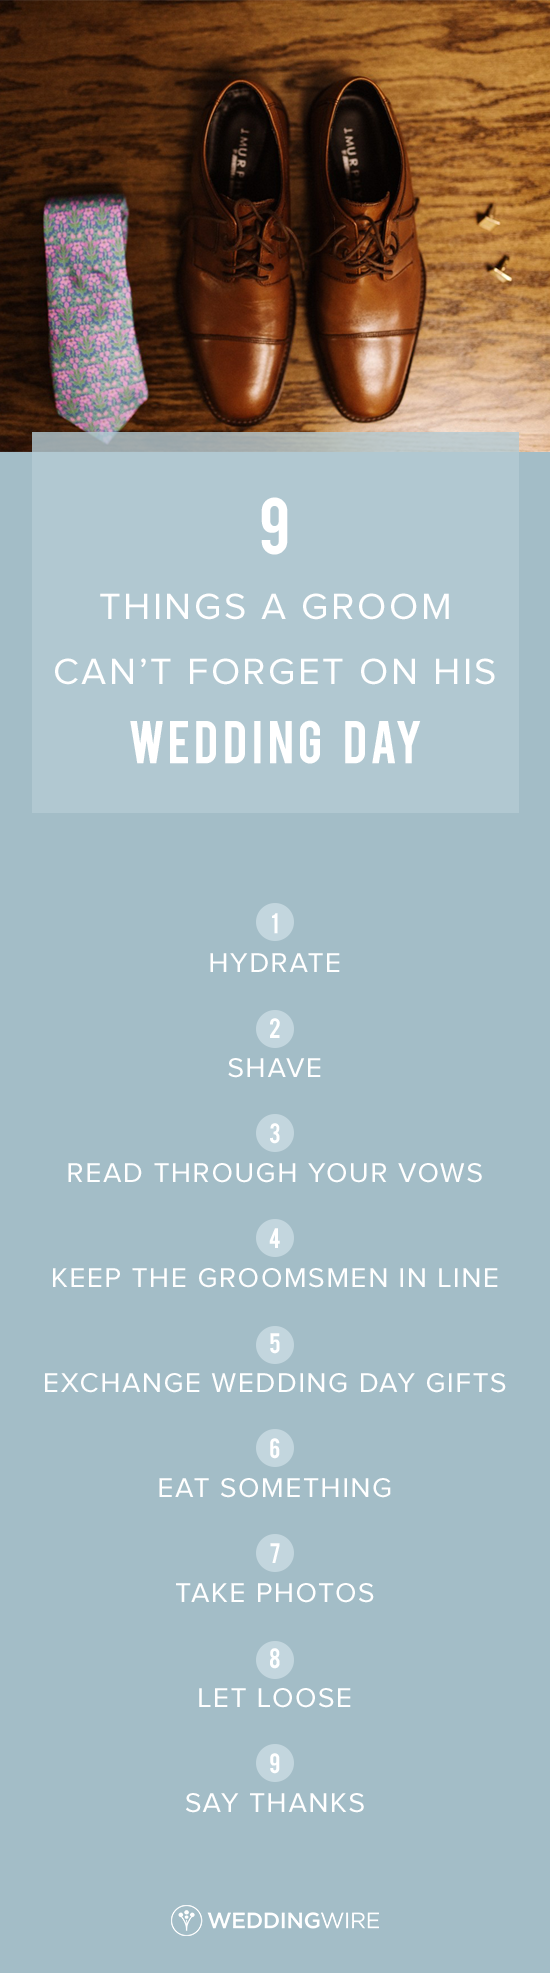 9 Things a Groom Can't Forget on His Wedding Day | Grooms ...